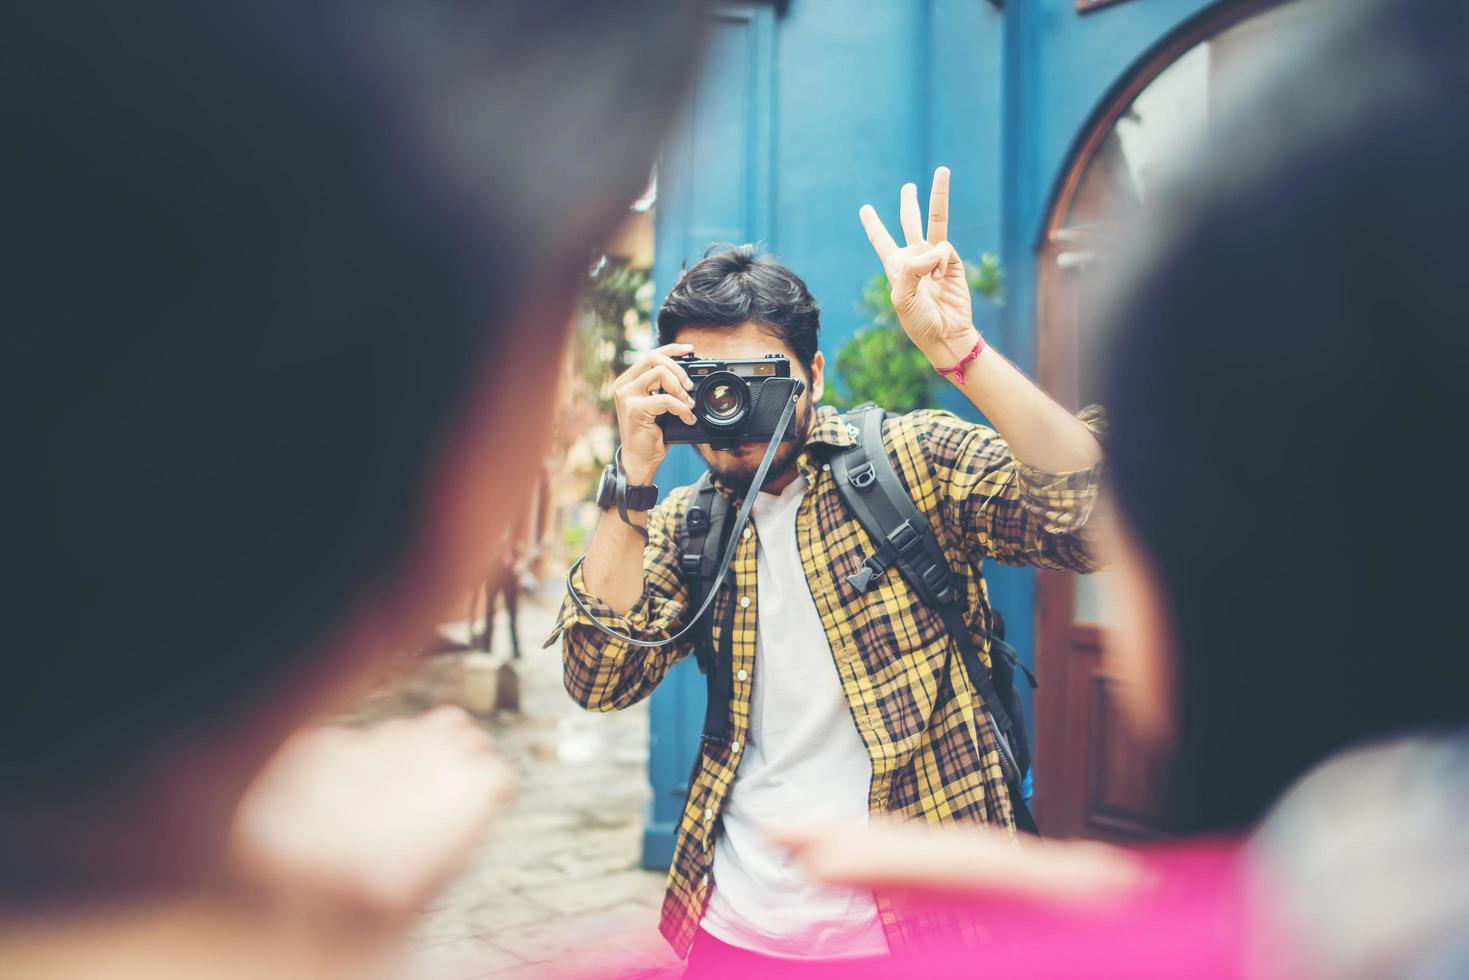 Young man taking pics of his friends while traveling in urban area together photo